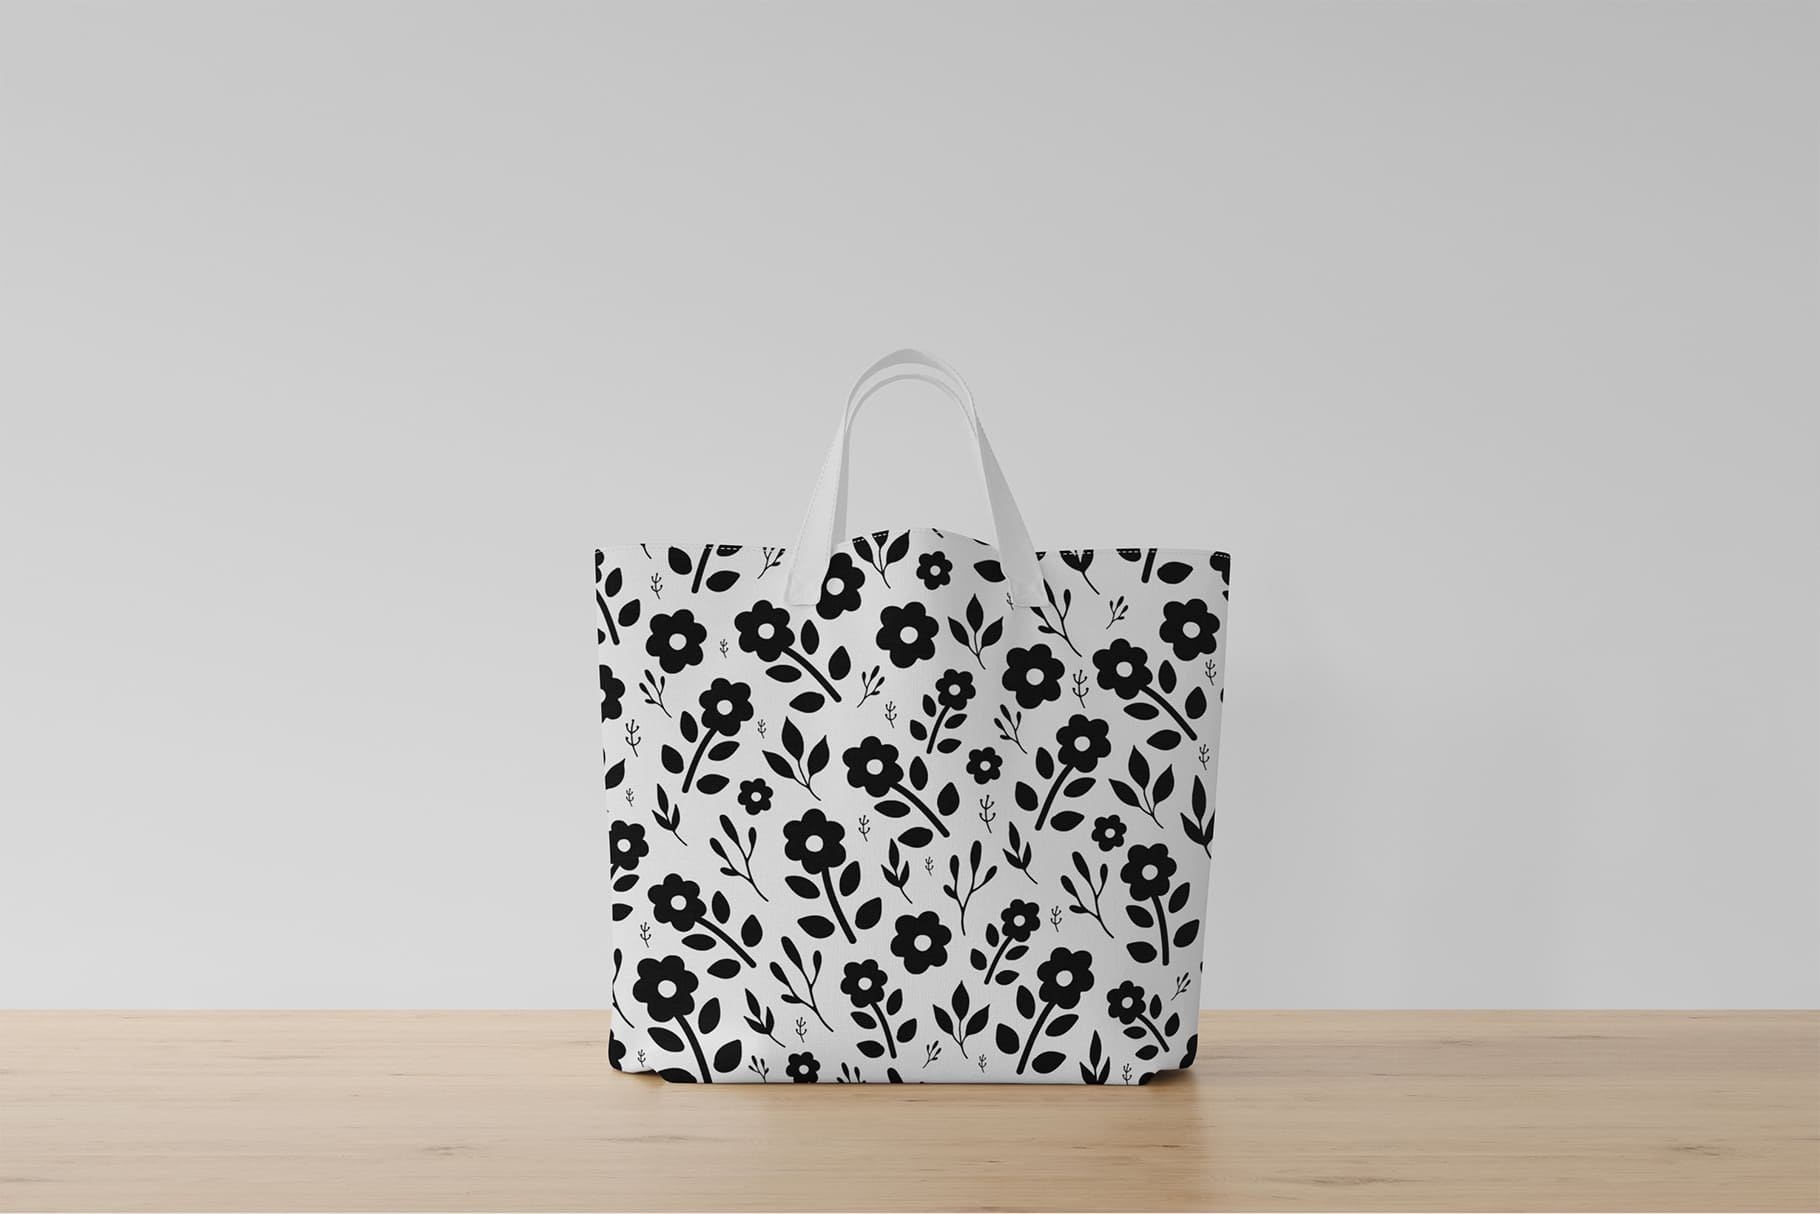 White bag with black flowers.